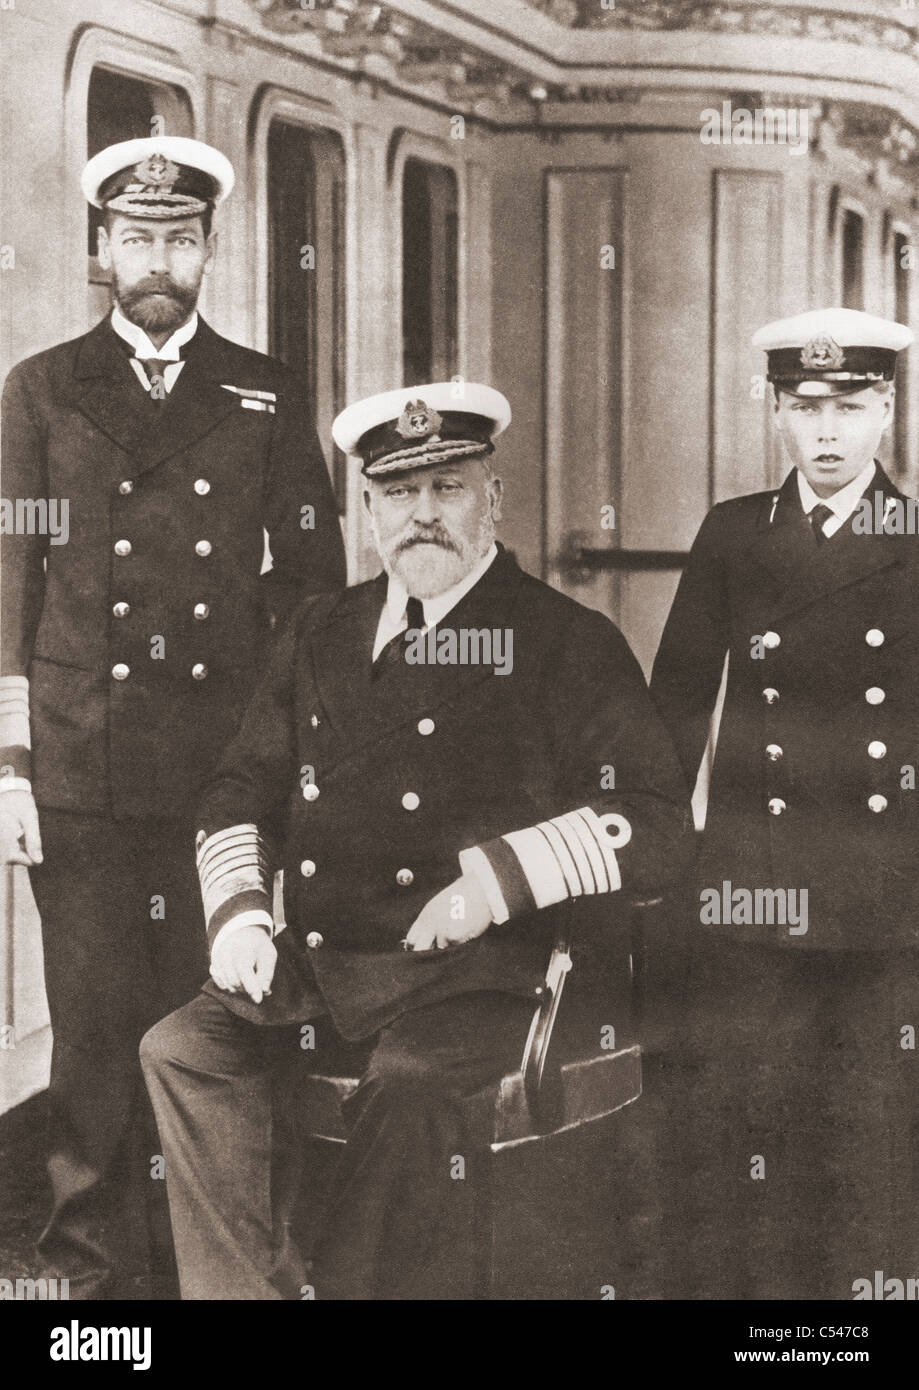 From left, Prince of Wales, later King George V, King Edward VII, seated, and Prince Edward, later Edward VIII. - Stock Image